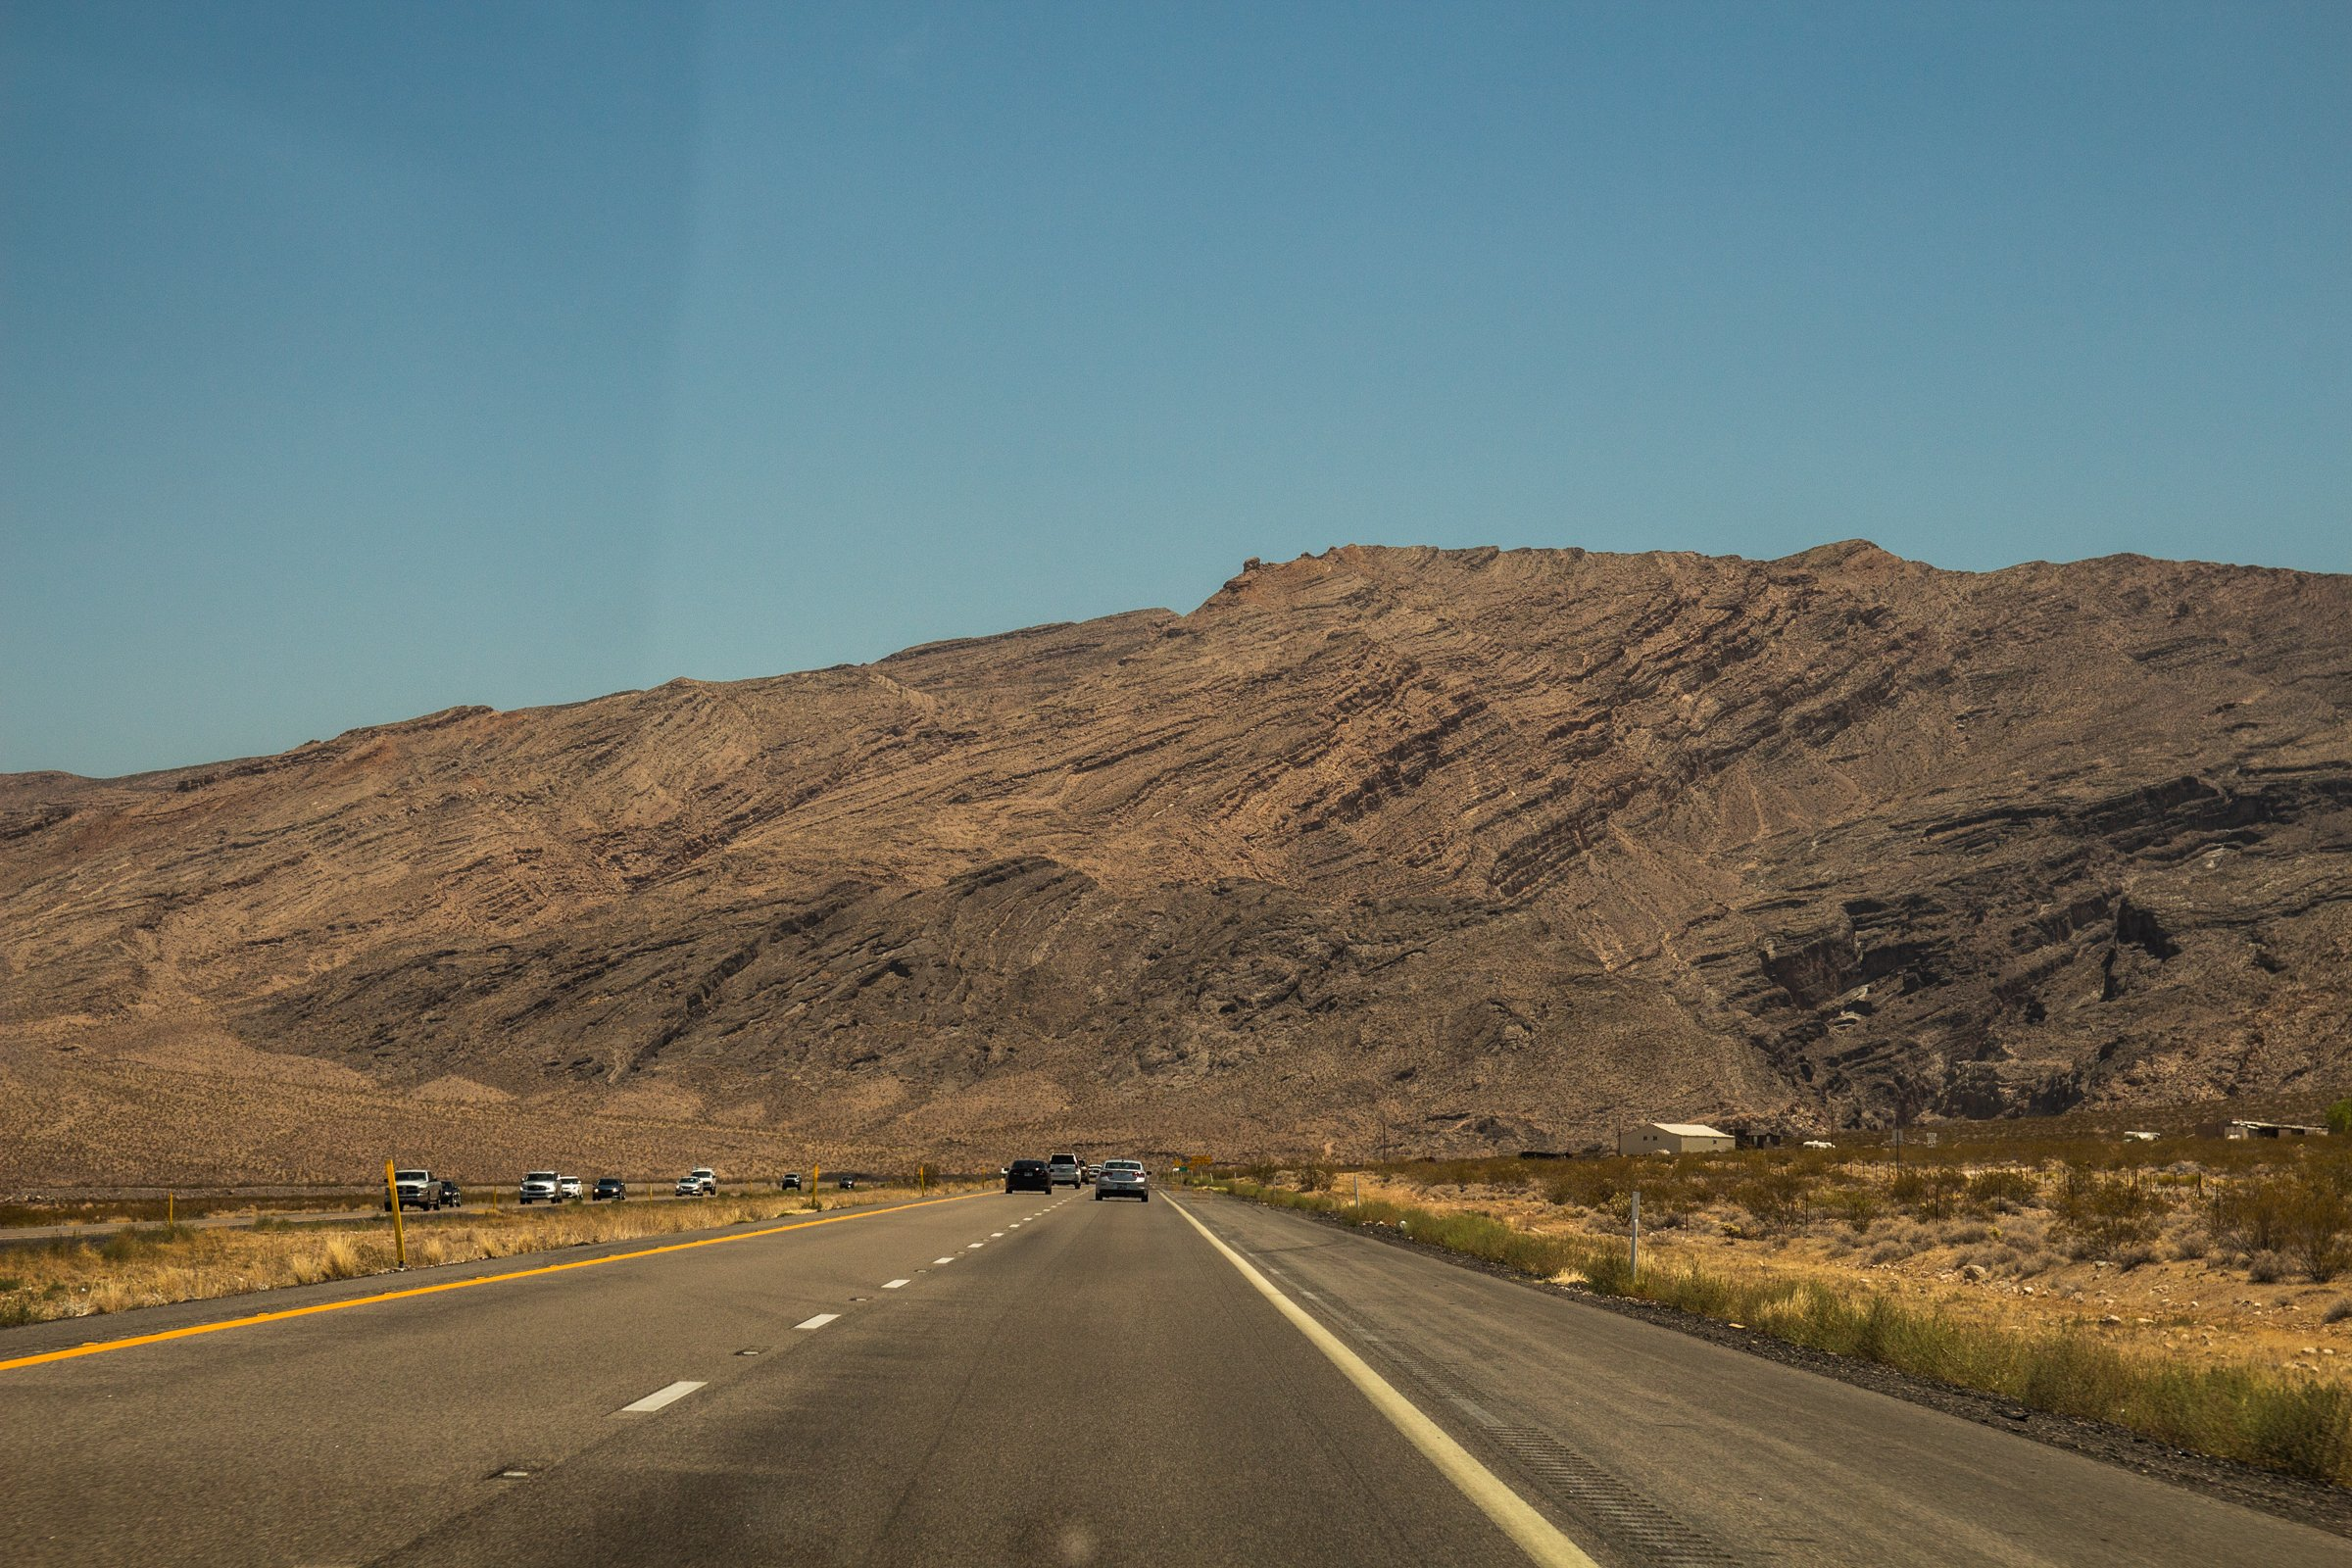 Cars In Desert Expressway Heading To Mountains